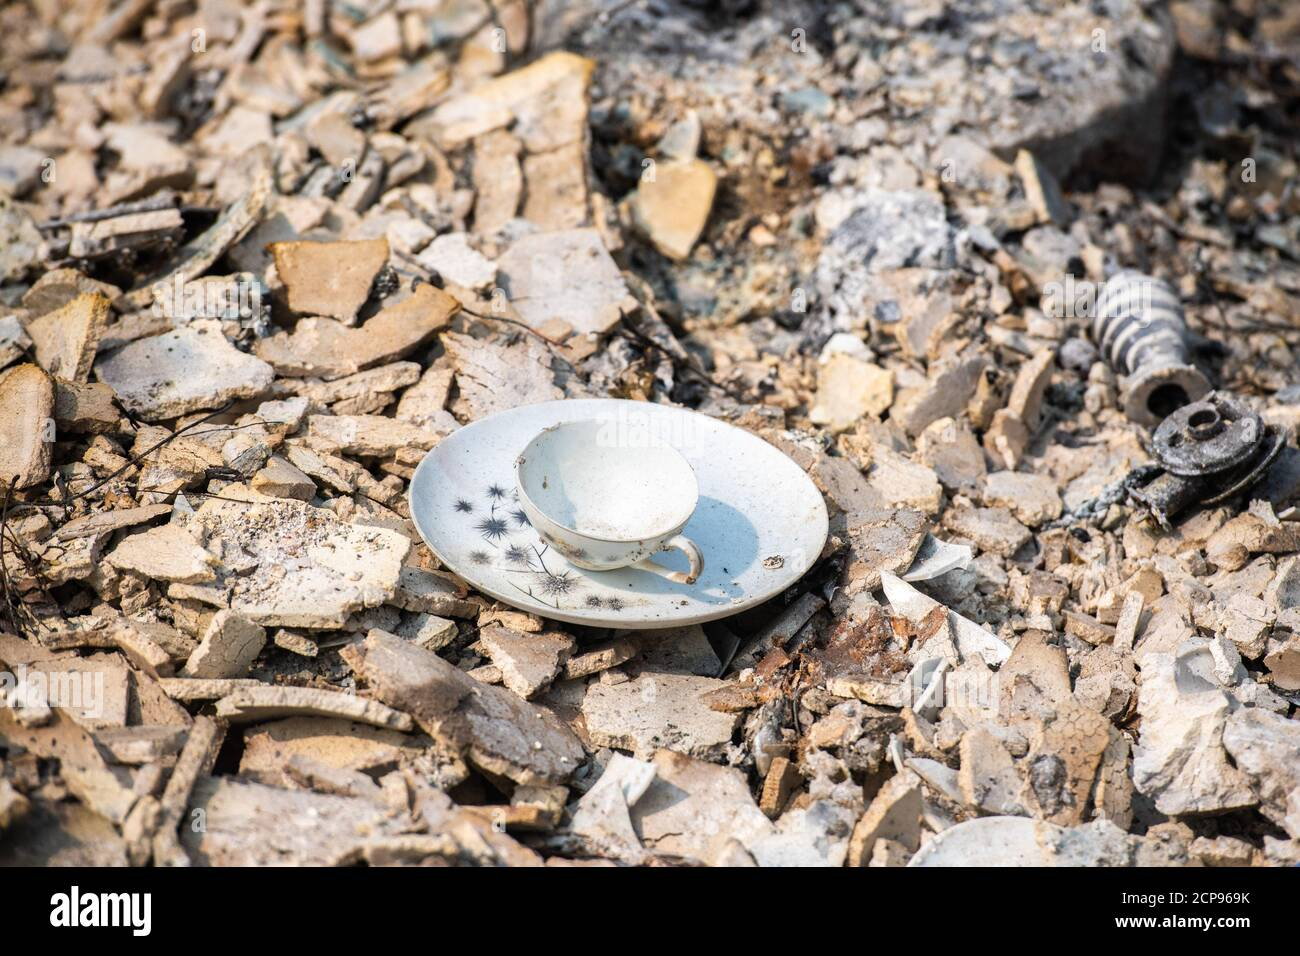 Talent, Ore. 18th Sep, 2020. A general view of the aftermath of the Almeda Fire. The town of Talent, Oregon, showing the burned out homes, cars and rubble left behind. In Talent, about 20 miles north of the California border, homes were charred beyond recognition. Across the western US, at least 87 wildfires are burning, according to the National Interagency Fire Center. They've torched more than 4.7 million acres -- more than six times the area of Rhode Island. Credit: Chris Tuite/Image Space/Media Punch/Alamy Live News Stock Photo